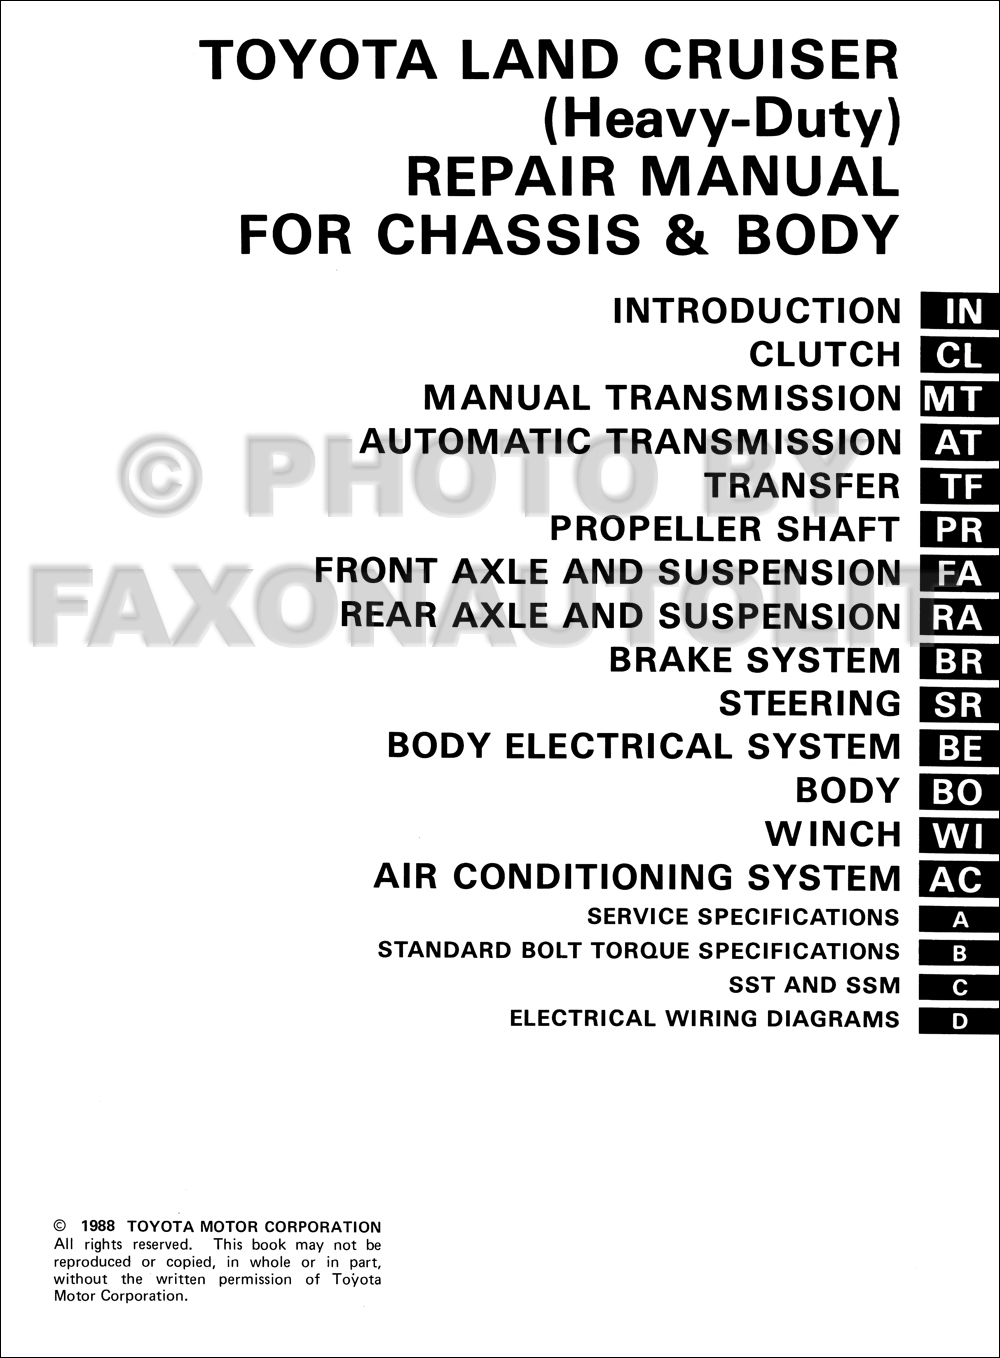 1984 Toyota Land Cruiser Chassis Body Repair Shop Manual Original Hd Wiring Diagram Fj60 1985 Click On Thumbnail To Zoom